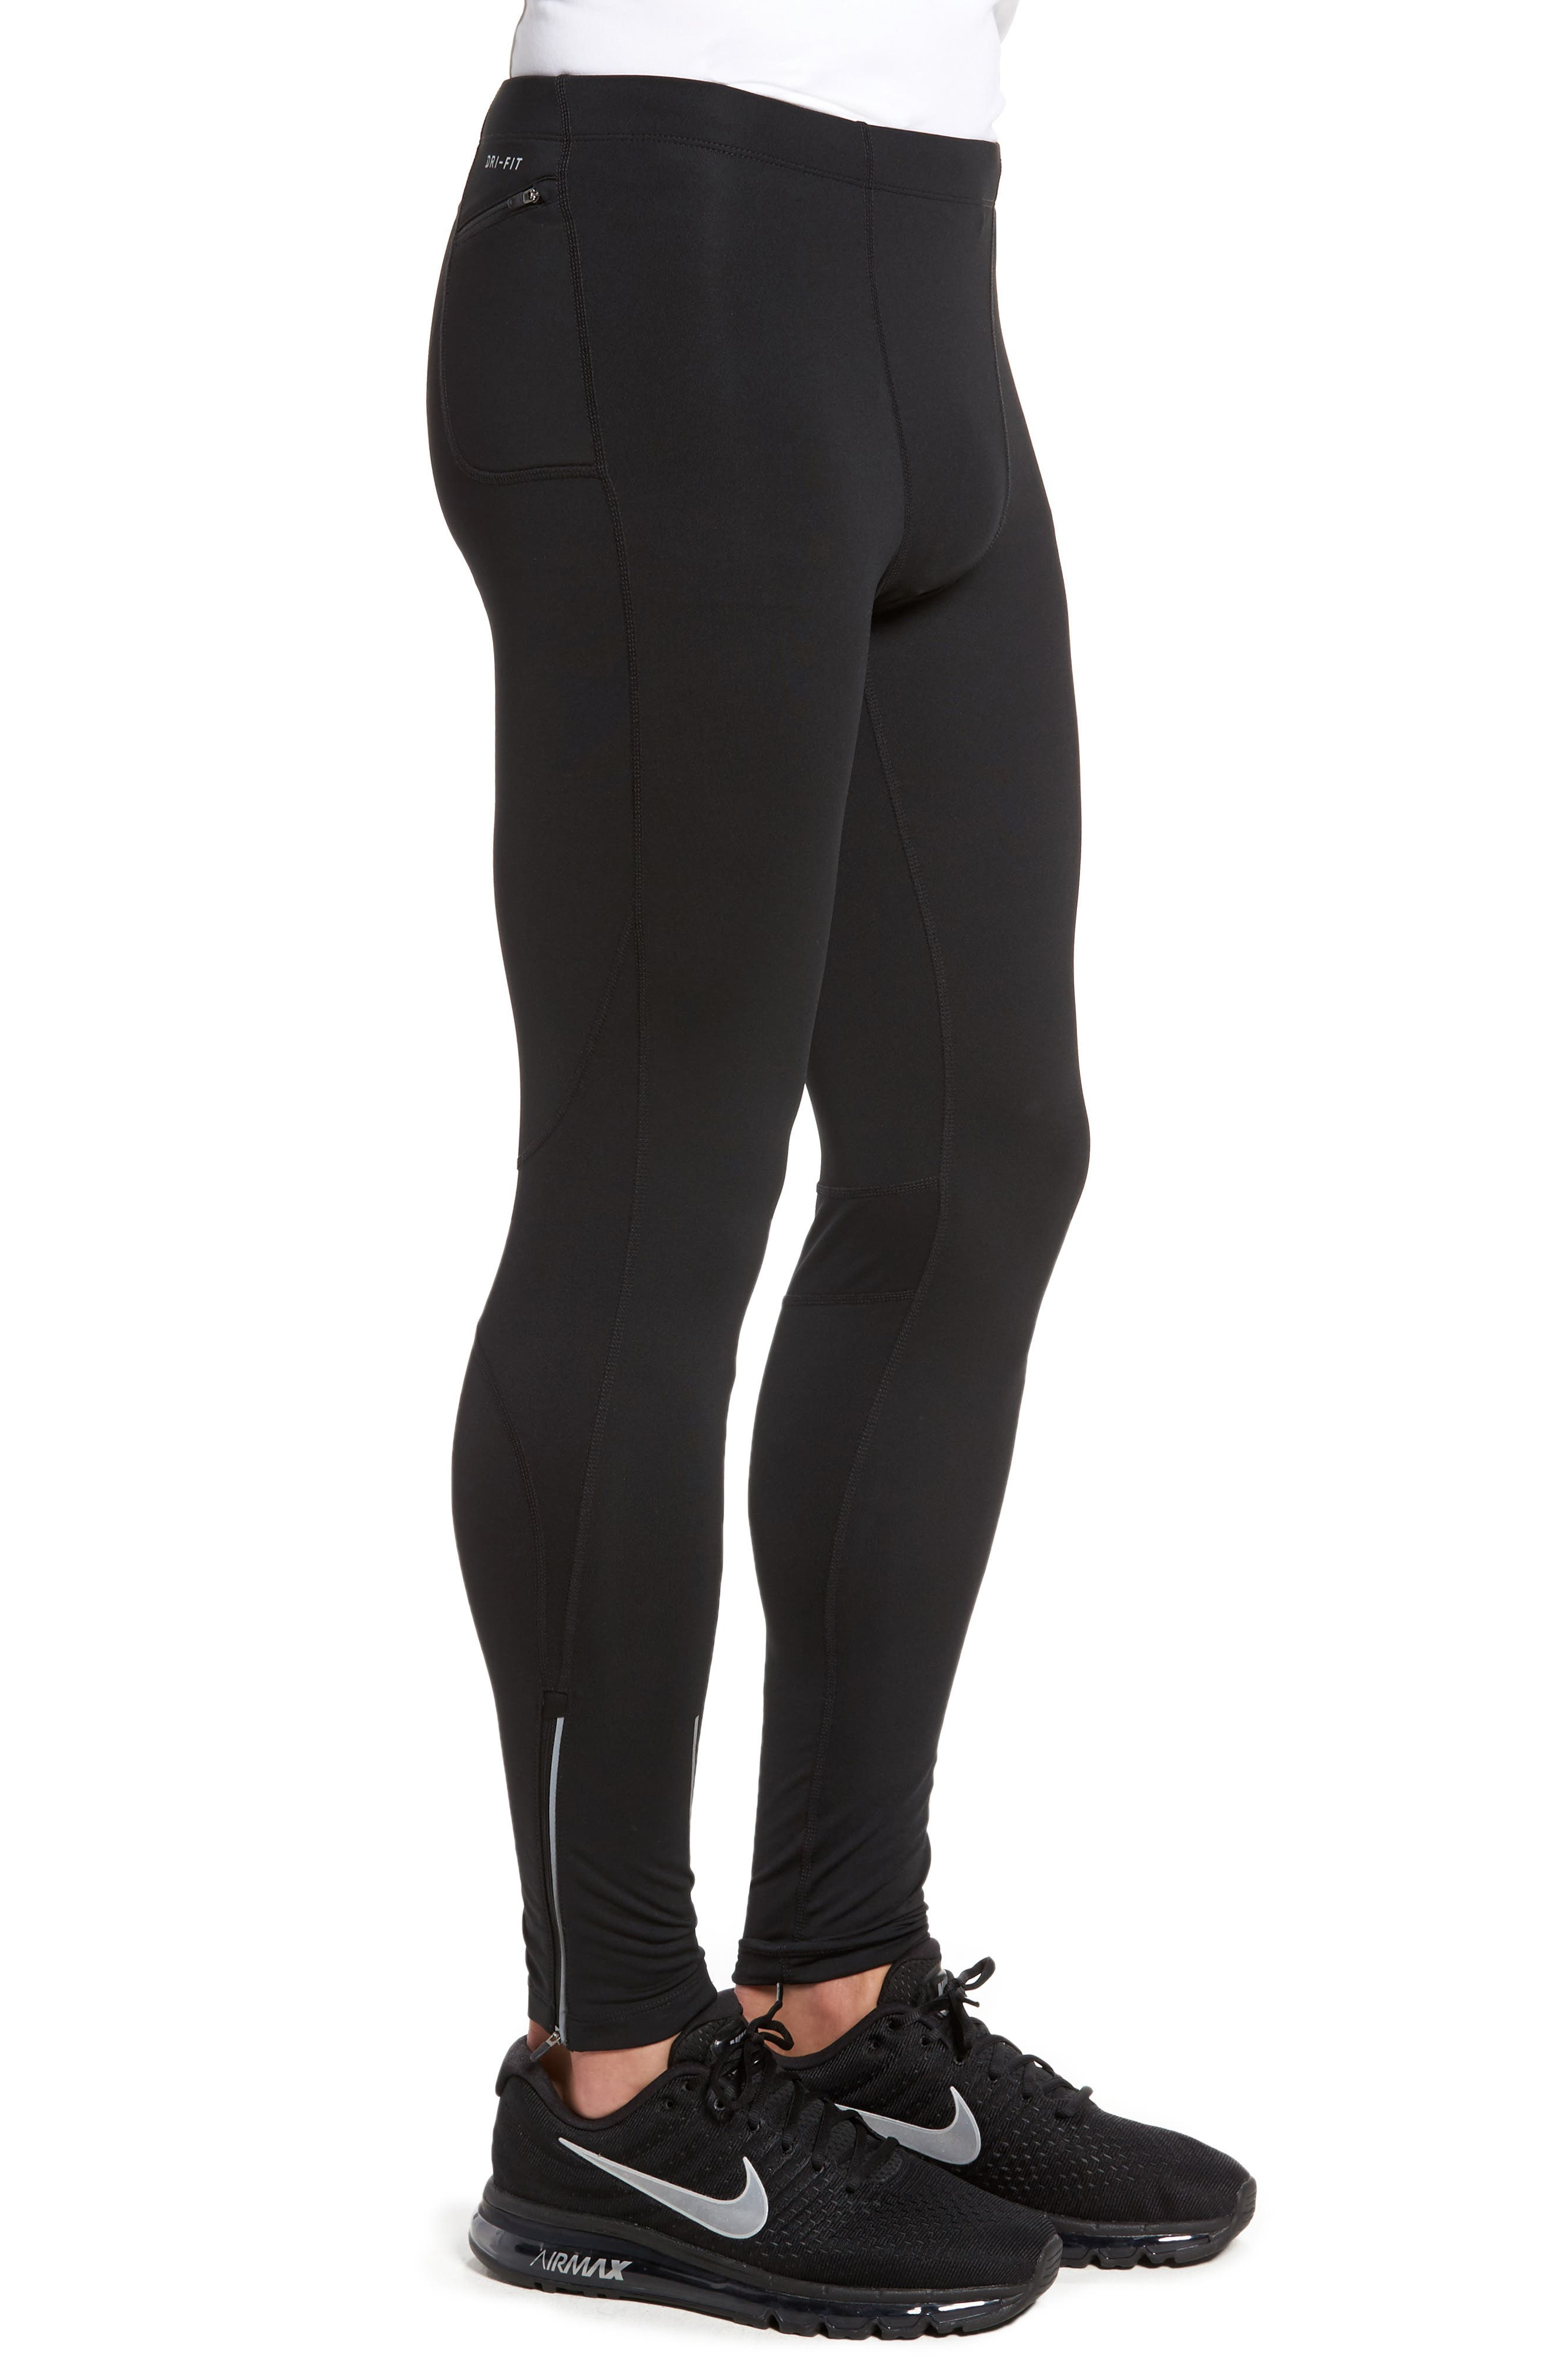 Therma Dry Running Tights,                             Alternate thumbnail 3, color,                             Black